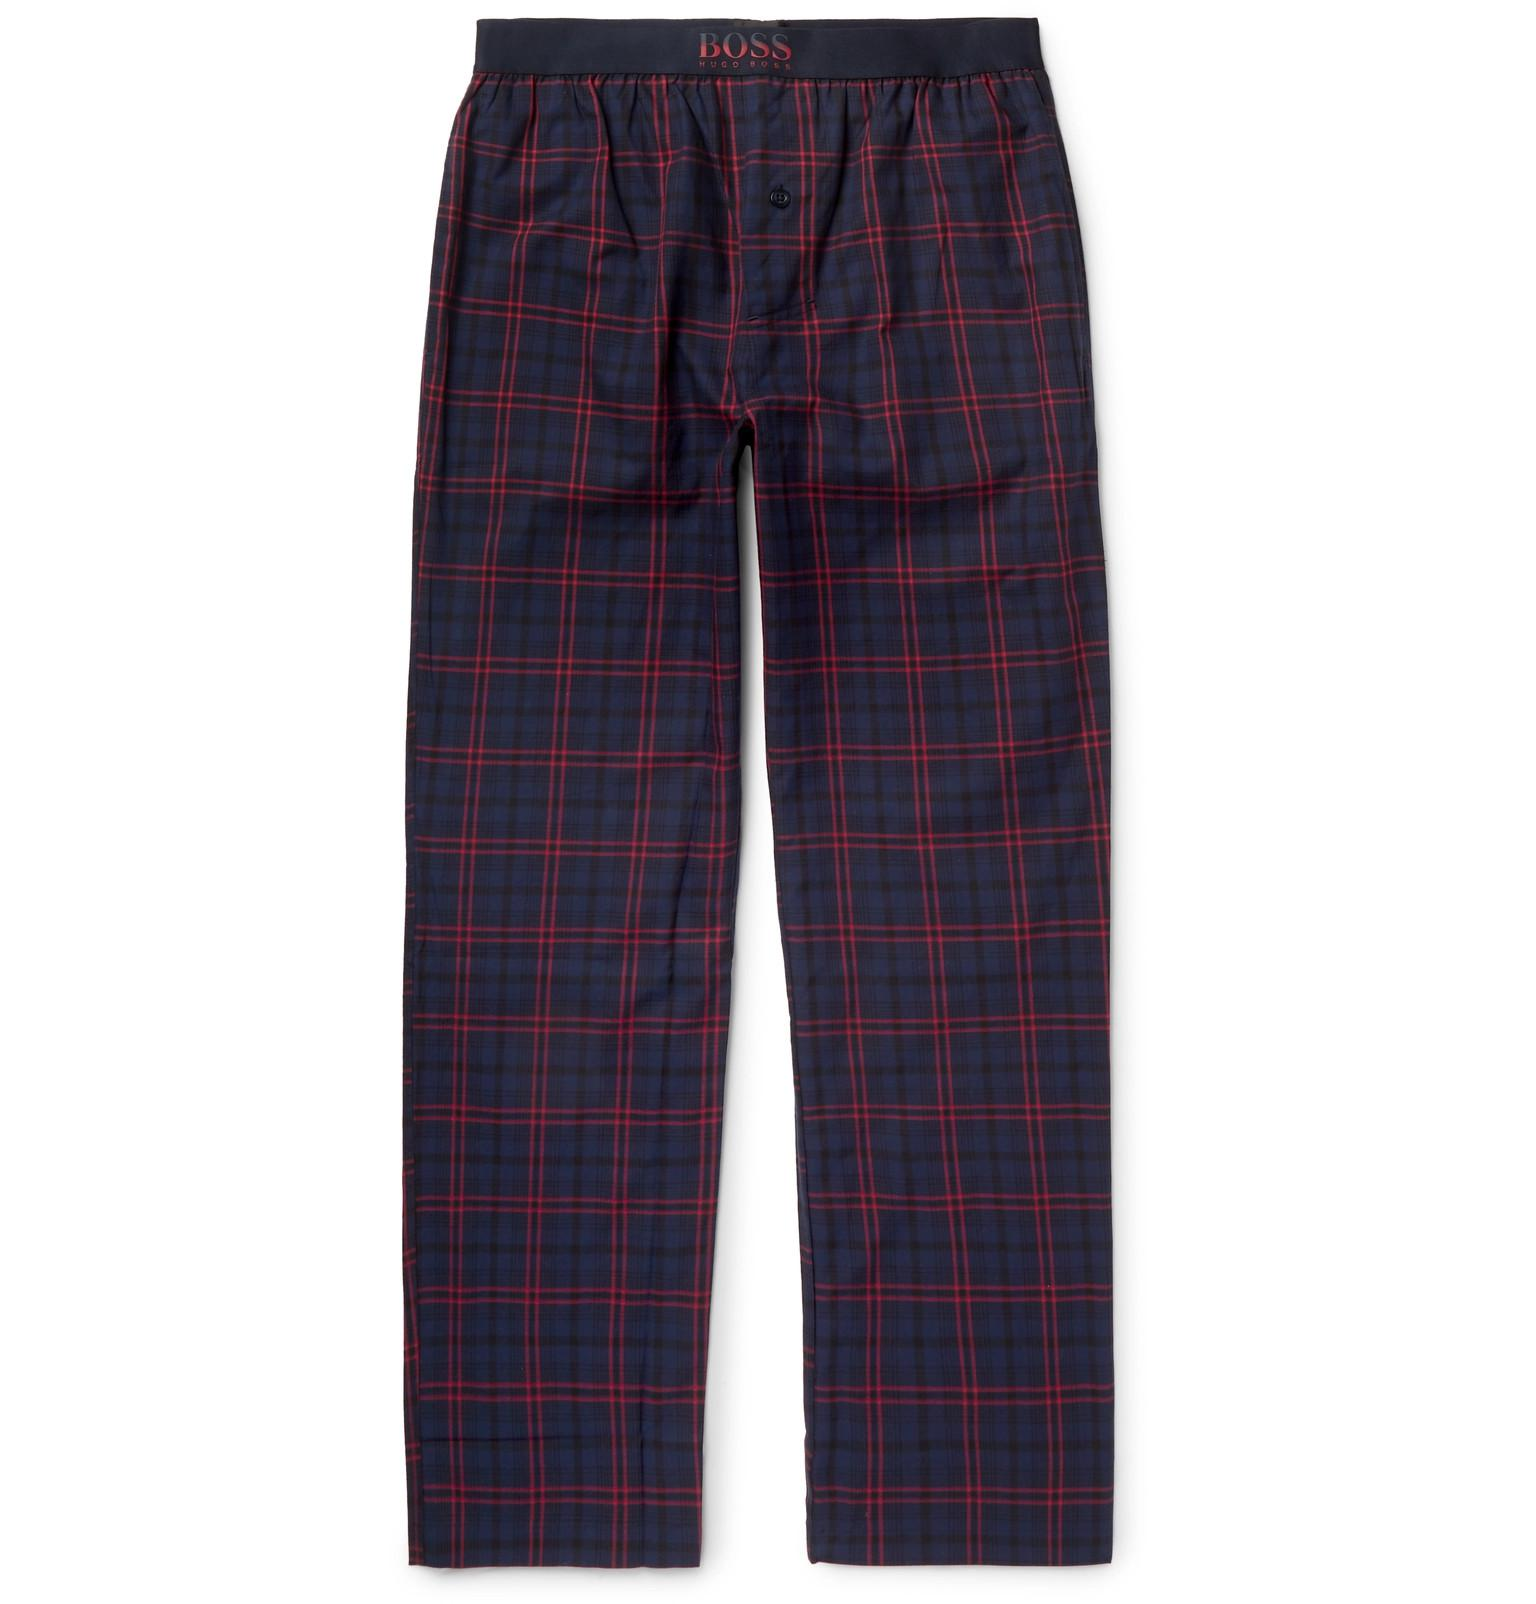 cfe819b1 BOSS - Blue Slim-fit Checked Cotton Pyjama Trousers for Men - Lyst. View  fullscreen